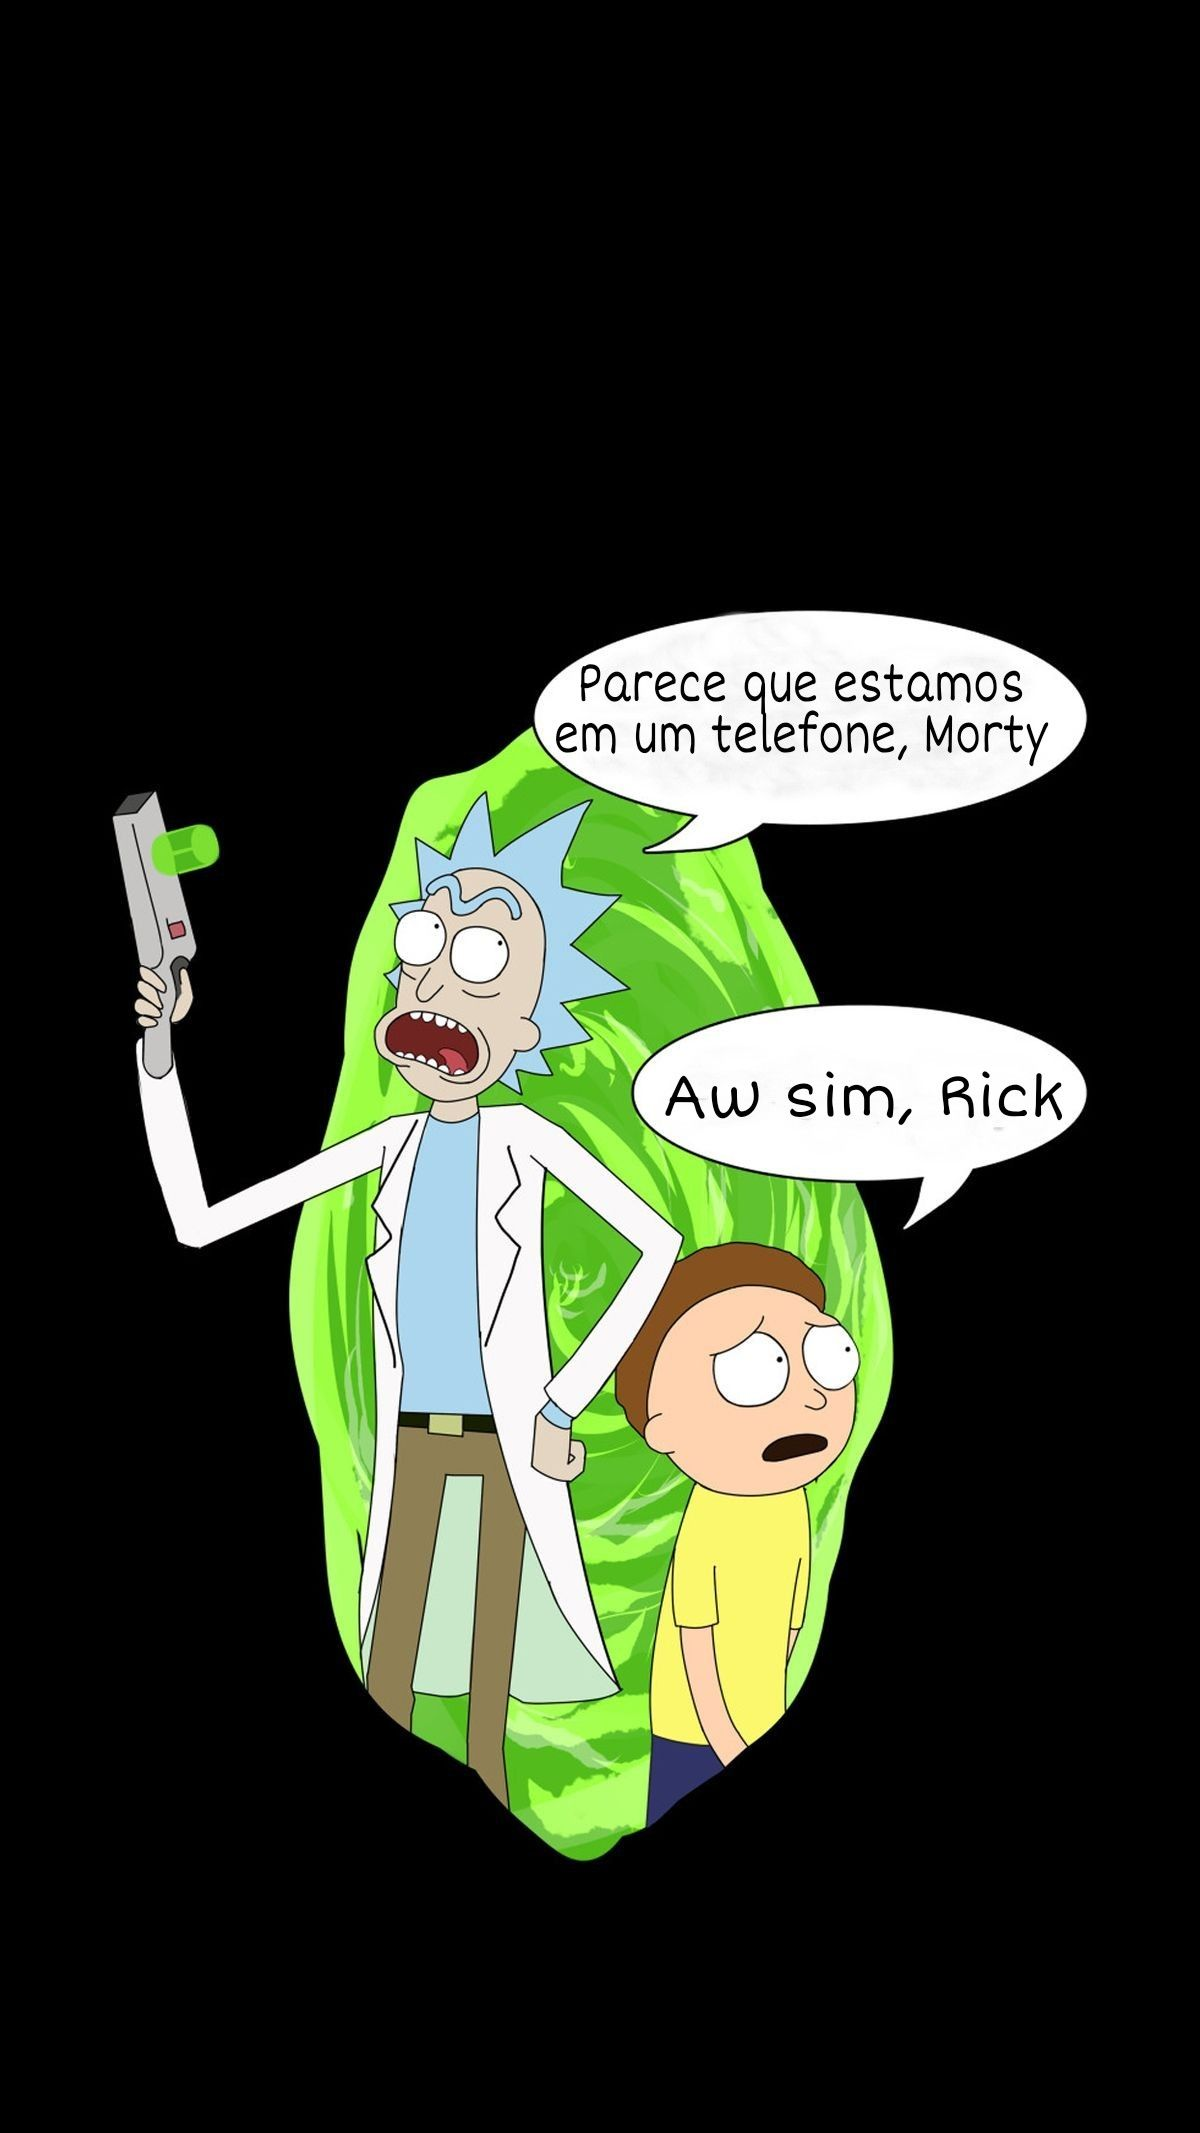 Rick and Morty  Rick and Morty Brasil  Rick and Morty Wallpaper     Rick and Morty  Rick and Morty Brasil  Rick and Morty Wallpaper  Rick and